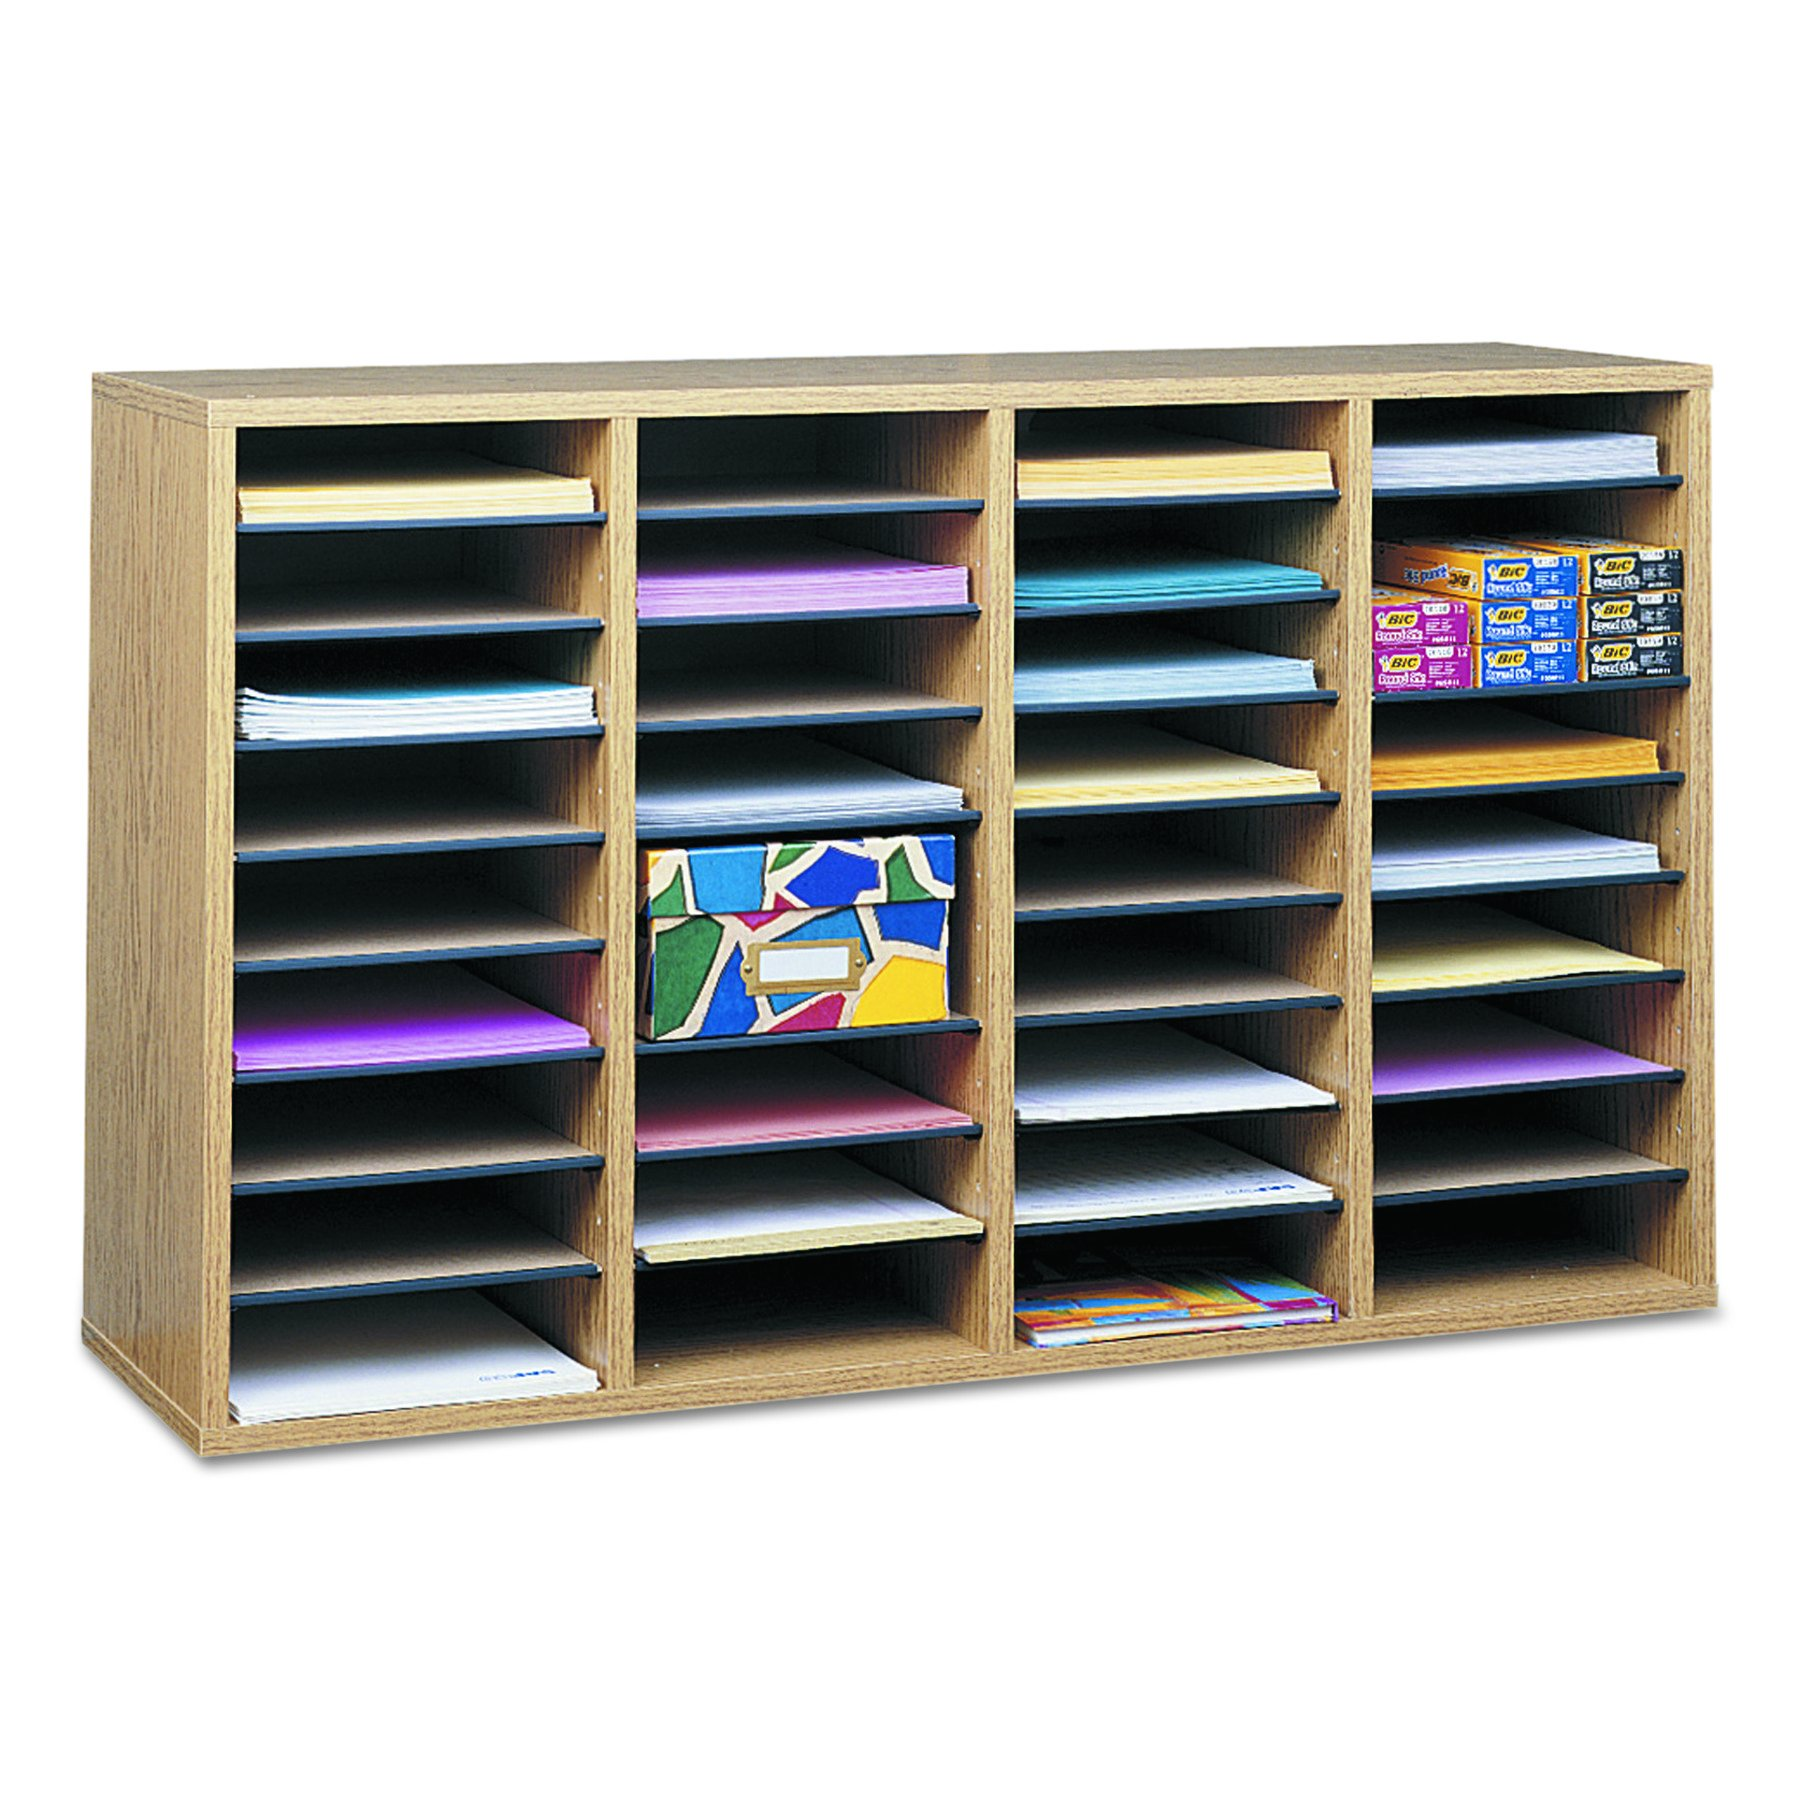 Safco Products 9424MO Wood Adjustable Literature Organizer, 36 Compartment, Oak by Safco Products (Image #2)